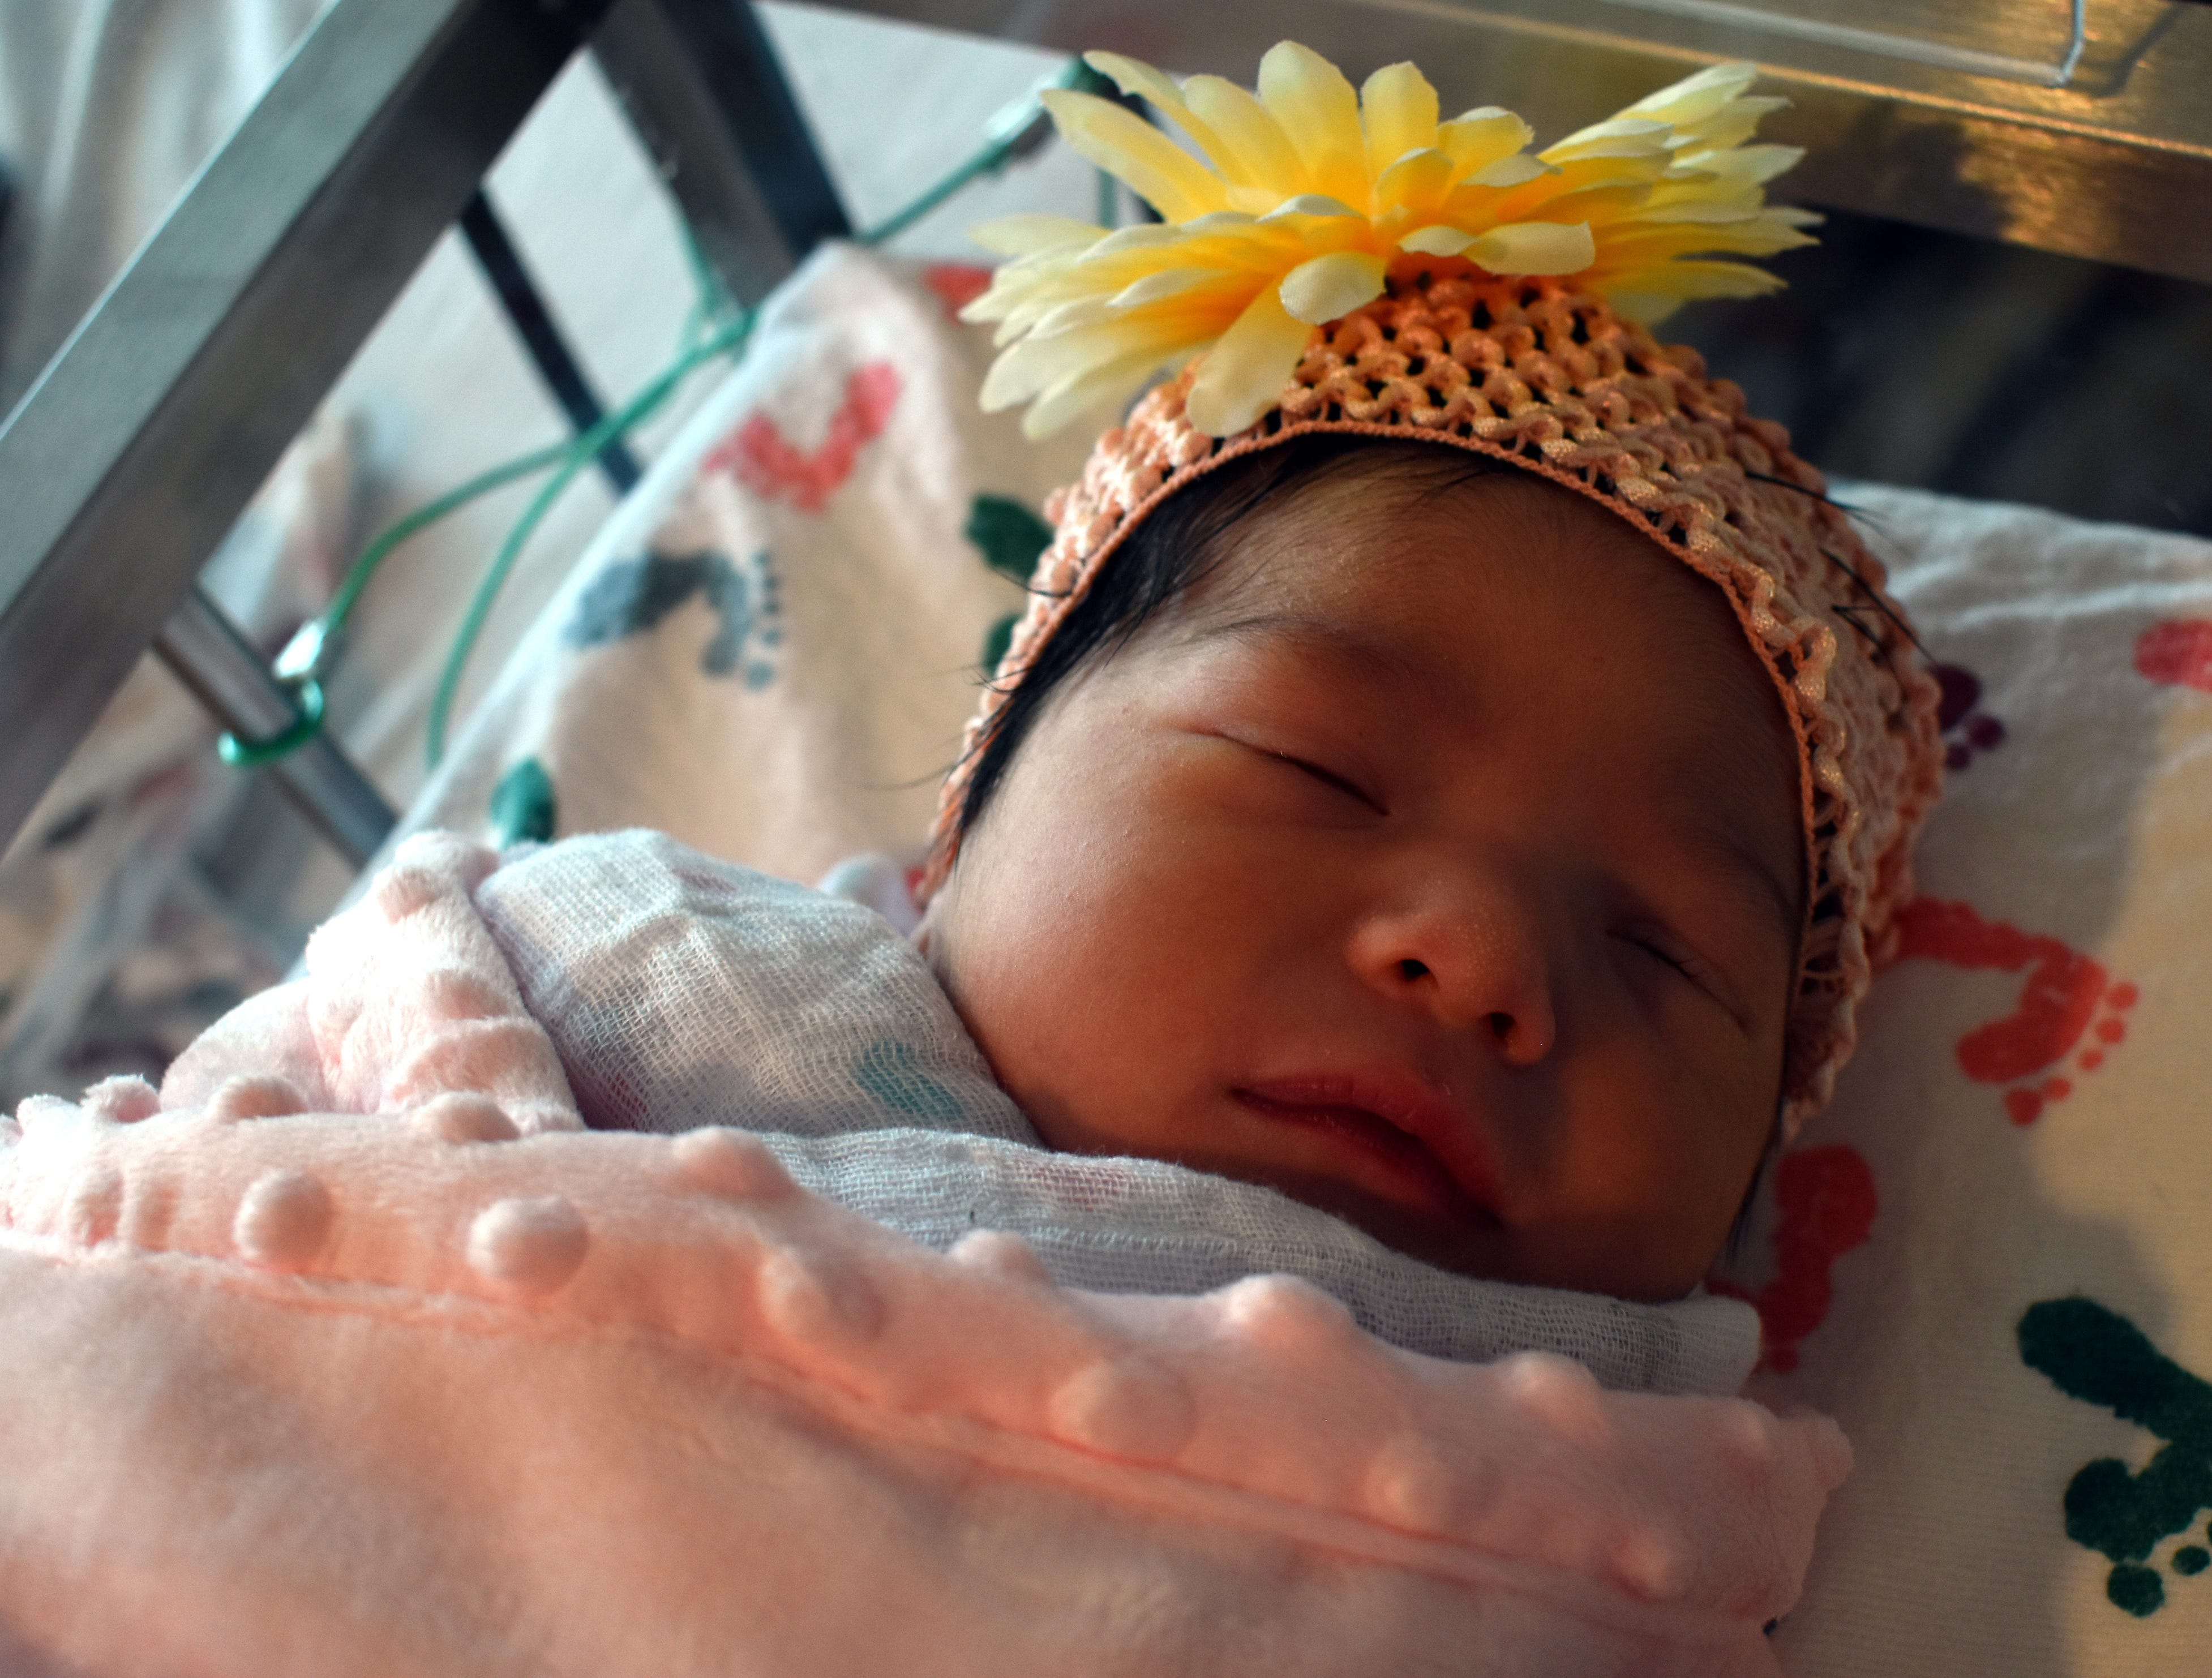 Baby born at Colorado hospital makes a perfectly timed entrance into the world